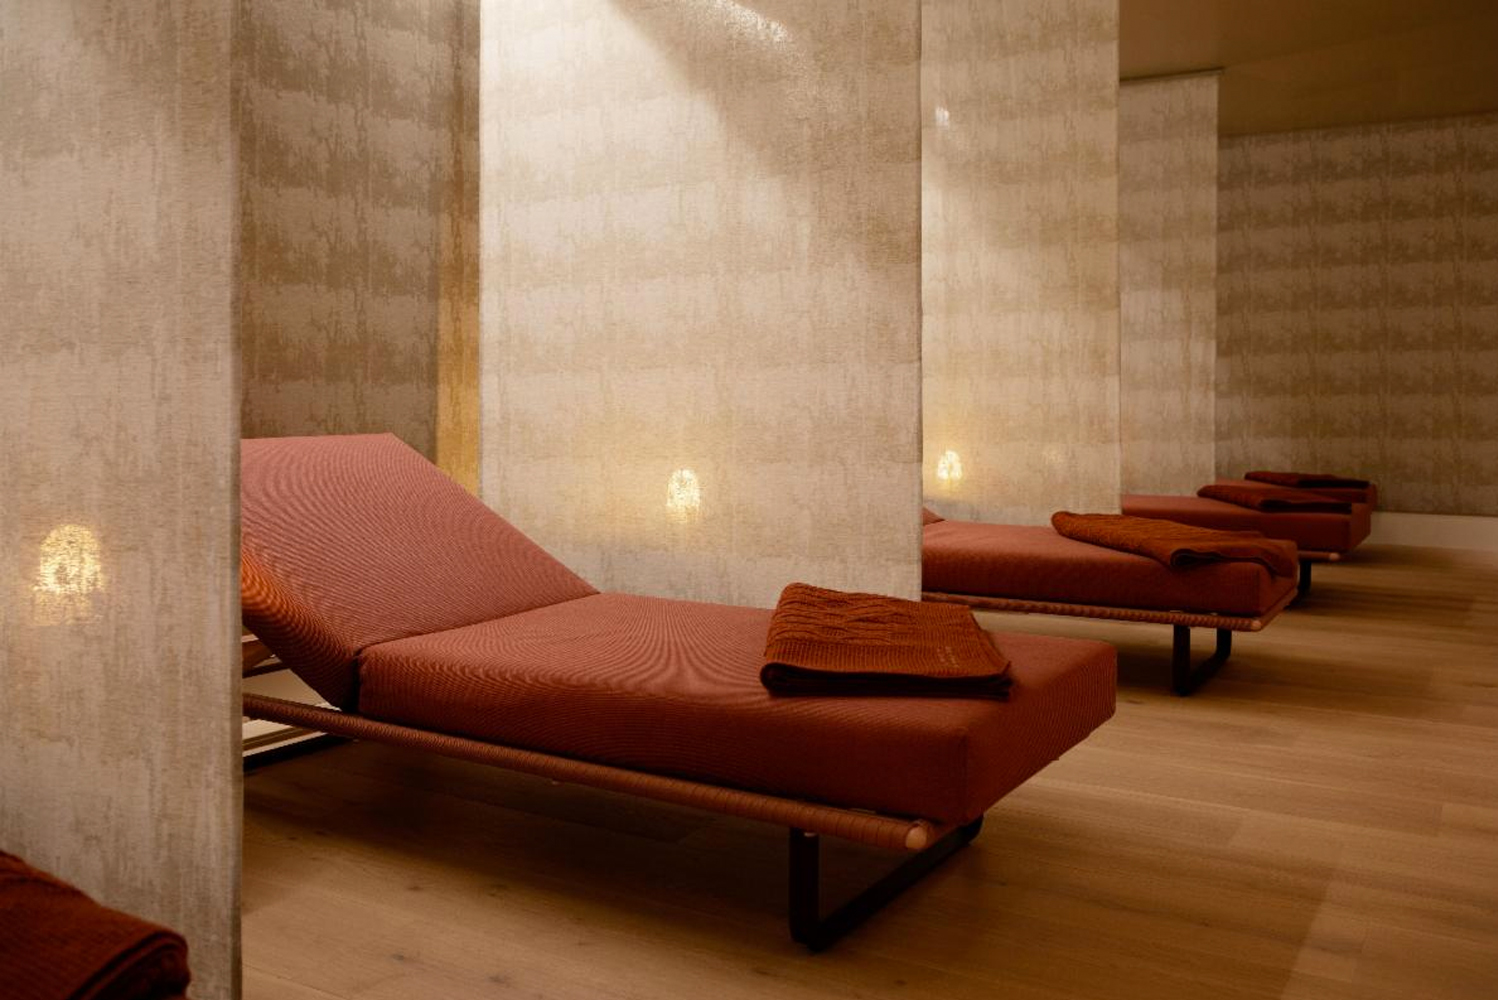 The Merrion, a property located in Dublin, unveiled its latest offering, The Merrion Spa and Health Club.